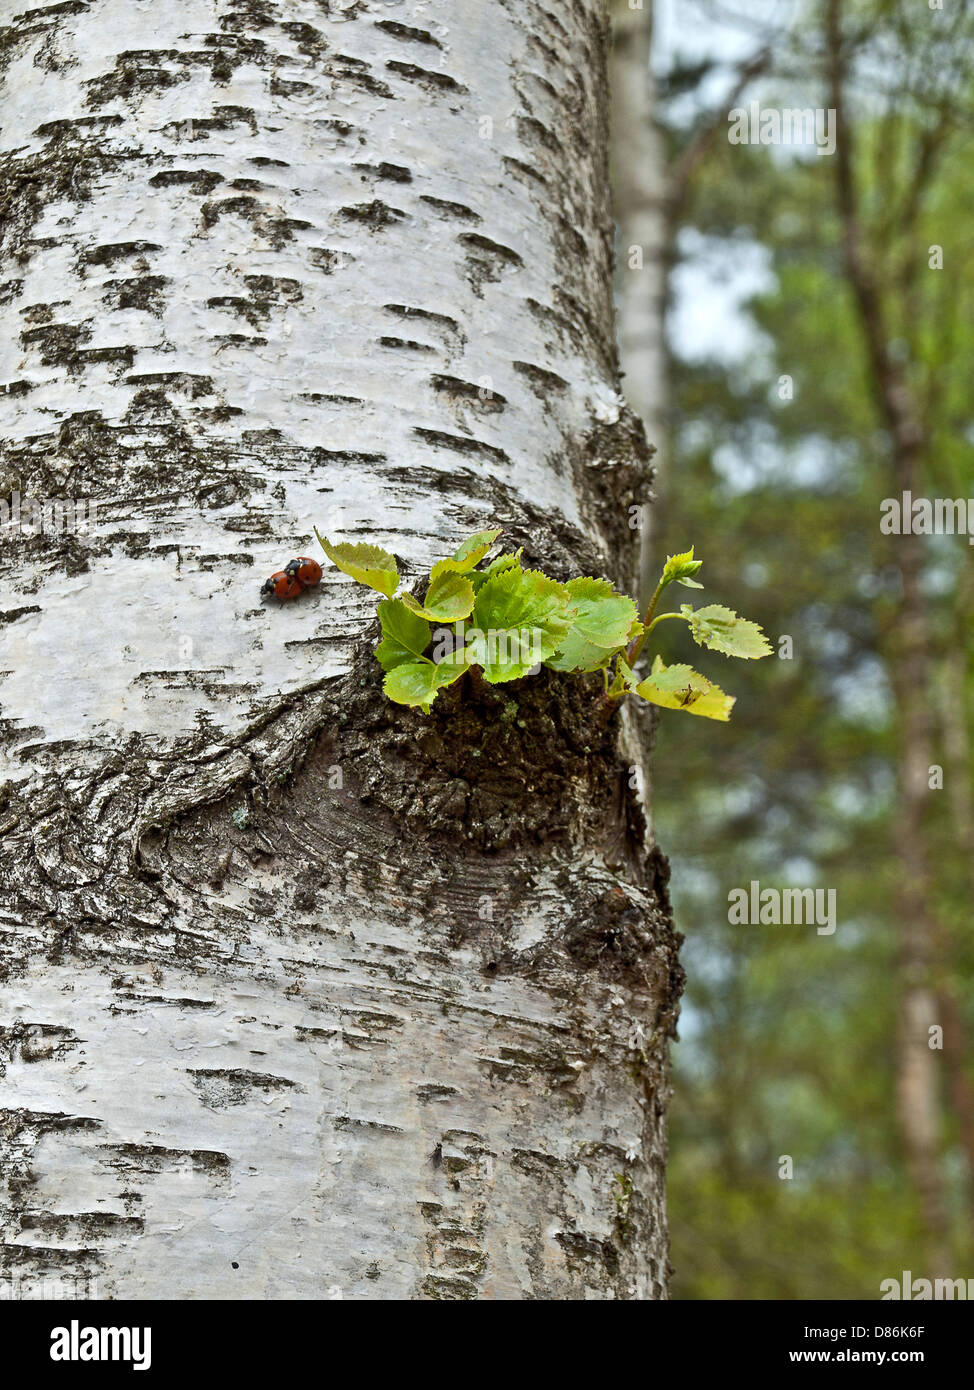 New shoot growing on the birch tree in spring time - Stock Image